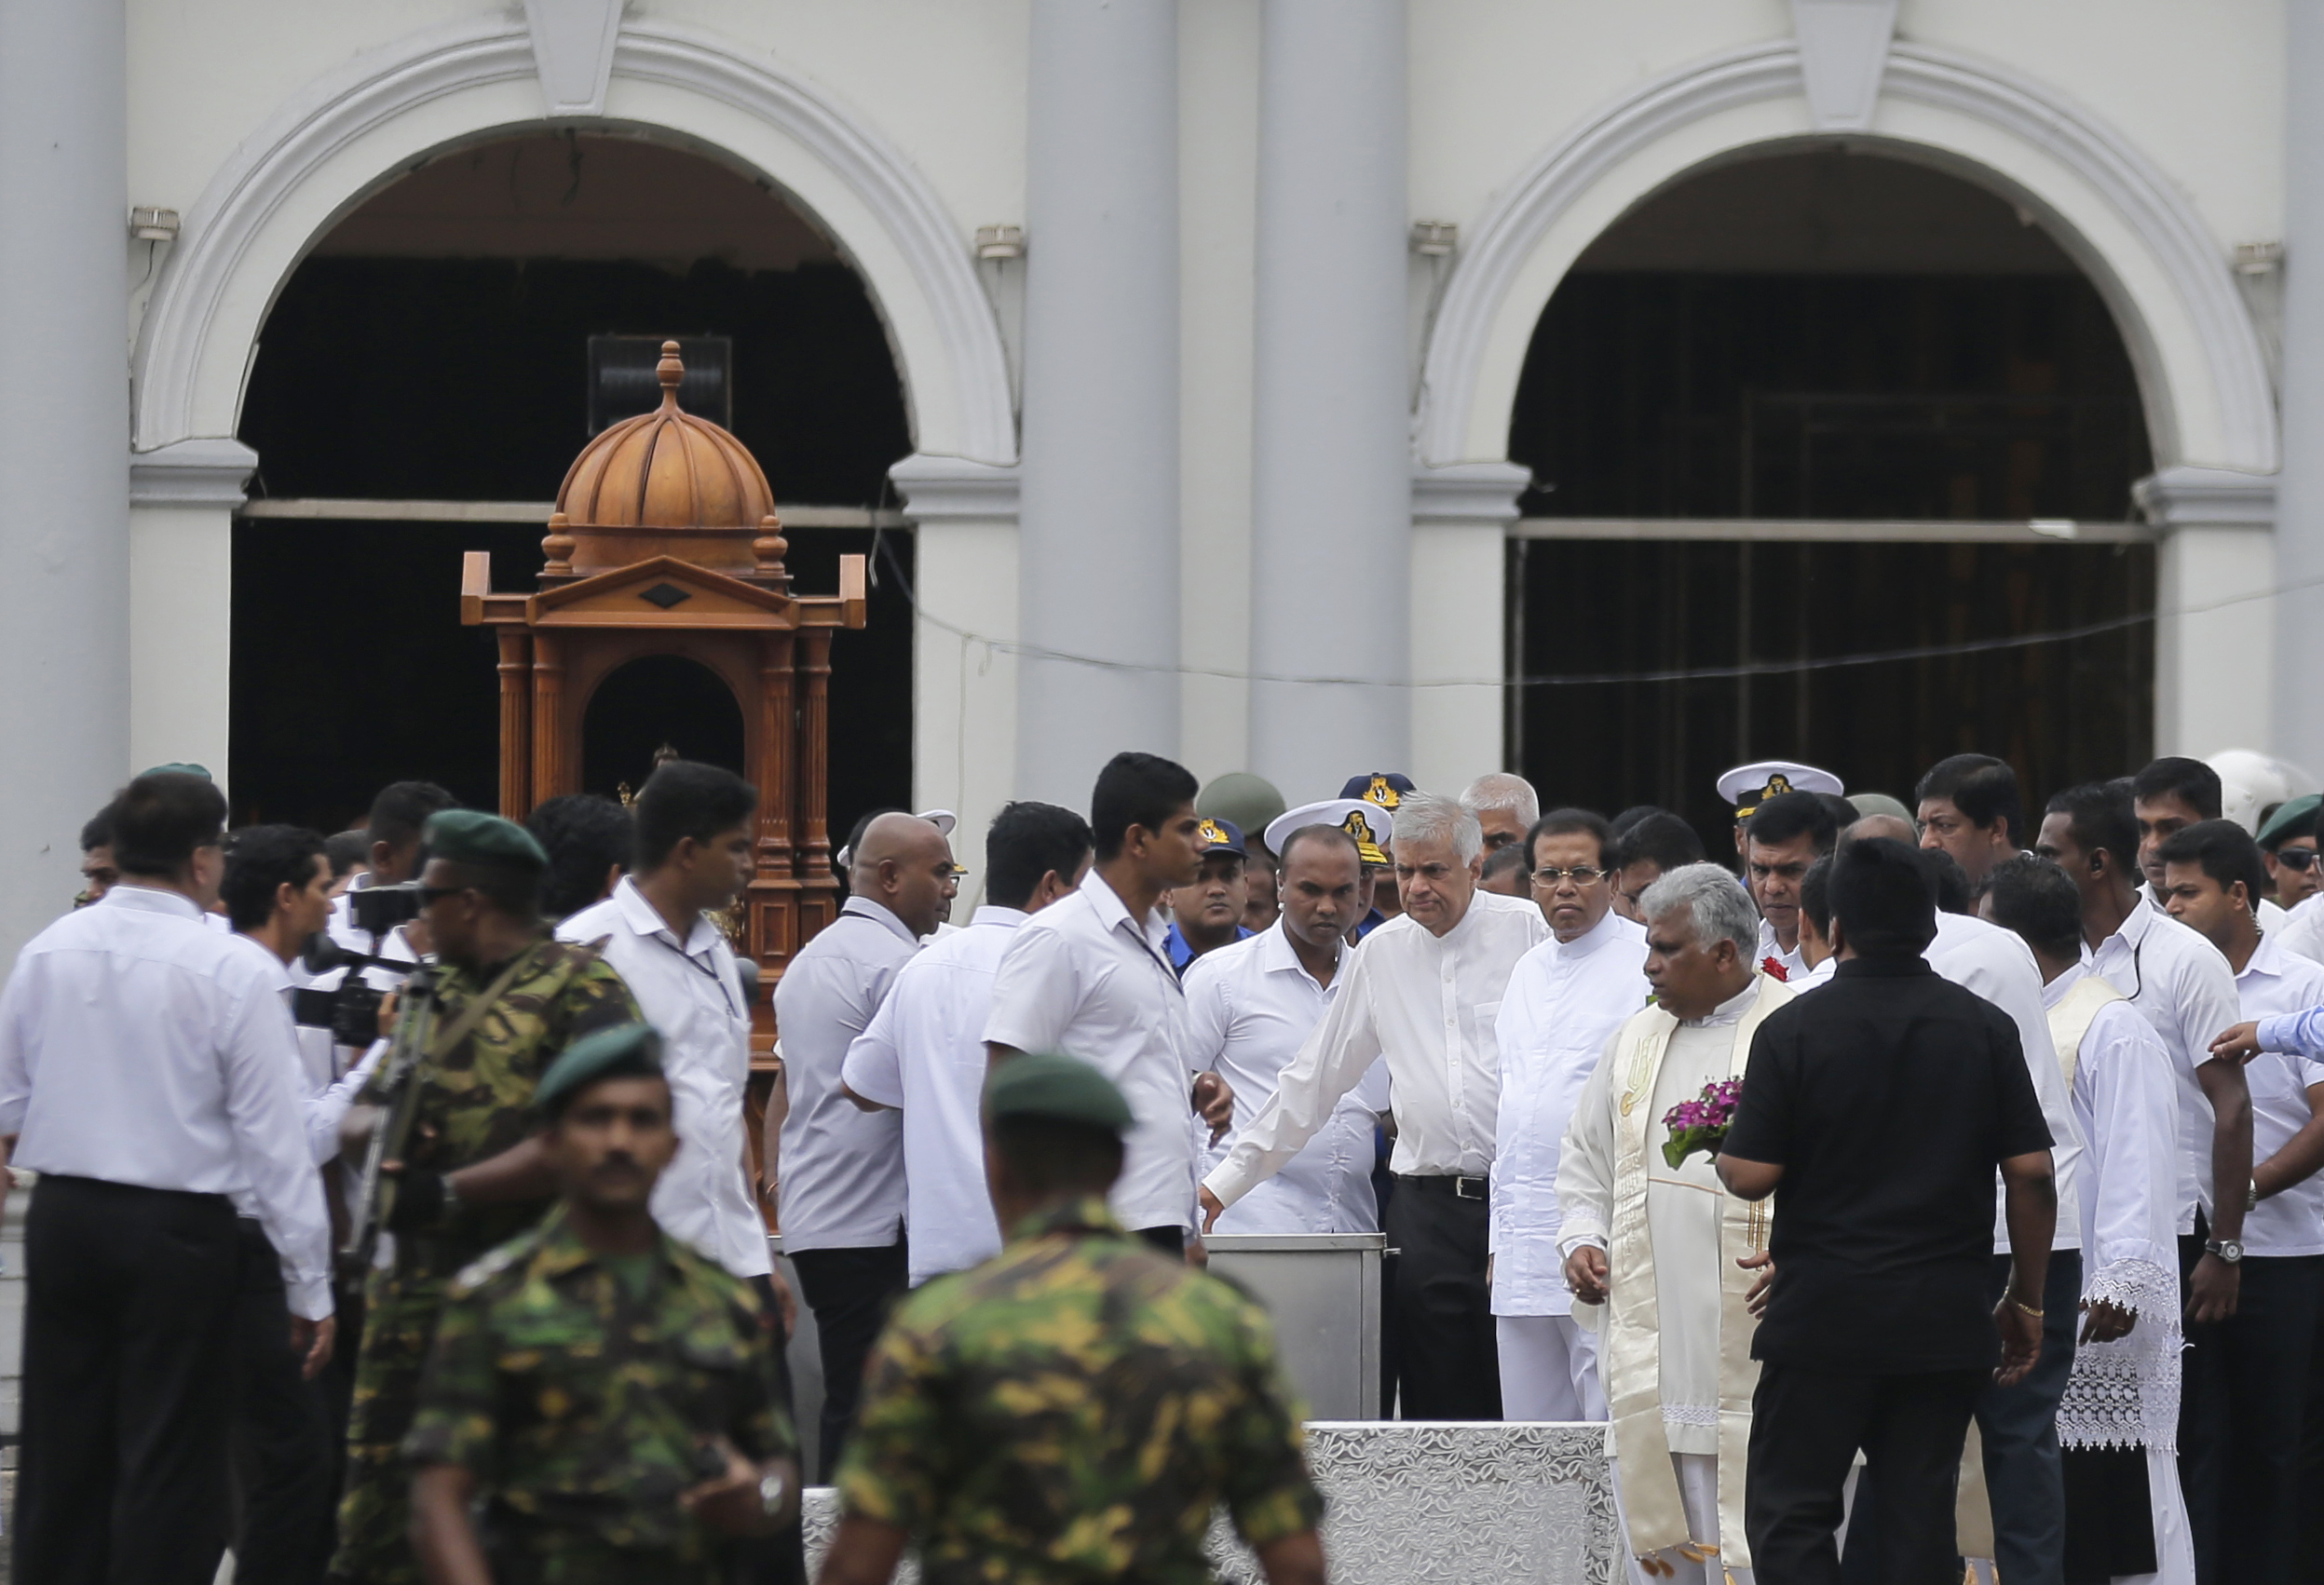 Sri Lankan President Maithripala Sirisena and Prime Minister Ranil Wickremasinghe, facing camera at right, attend a brief holy service marking the seventh day of the Easter attacks outside St. Anthony's Church in Colombo, Sri Lanka, April 28, 2019.